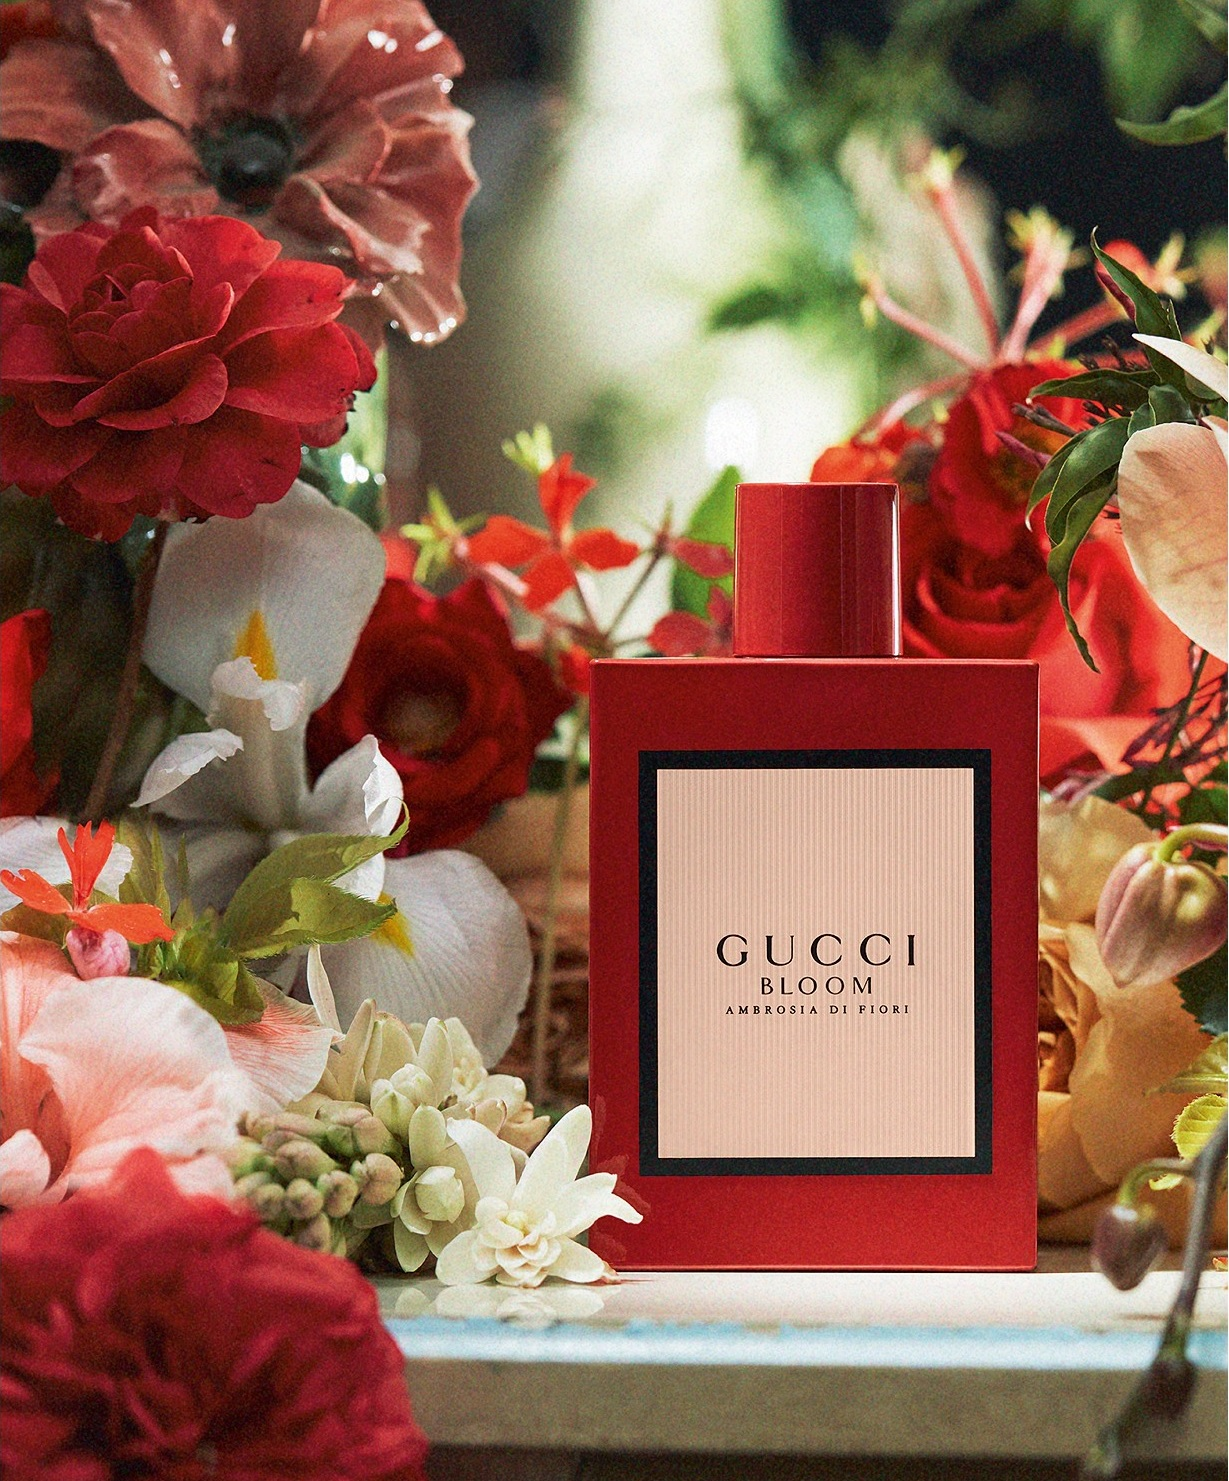 Fiori.Gucci Bloom Ambrosia Di Fiori Gucci Perfume A New Fragrance For